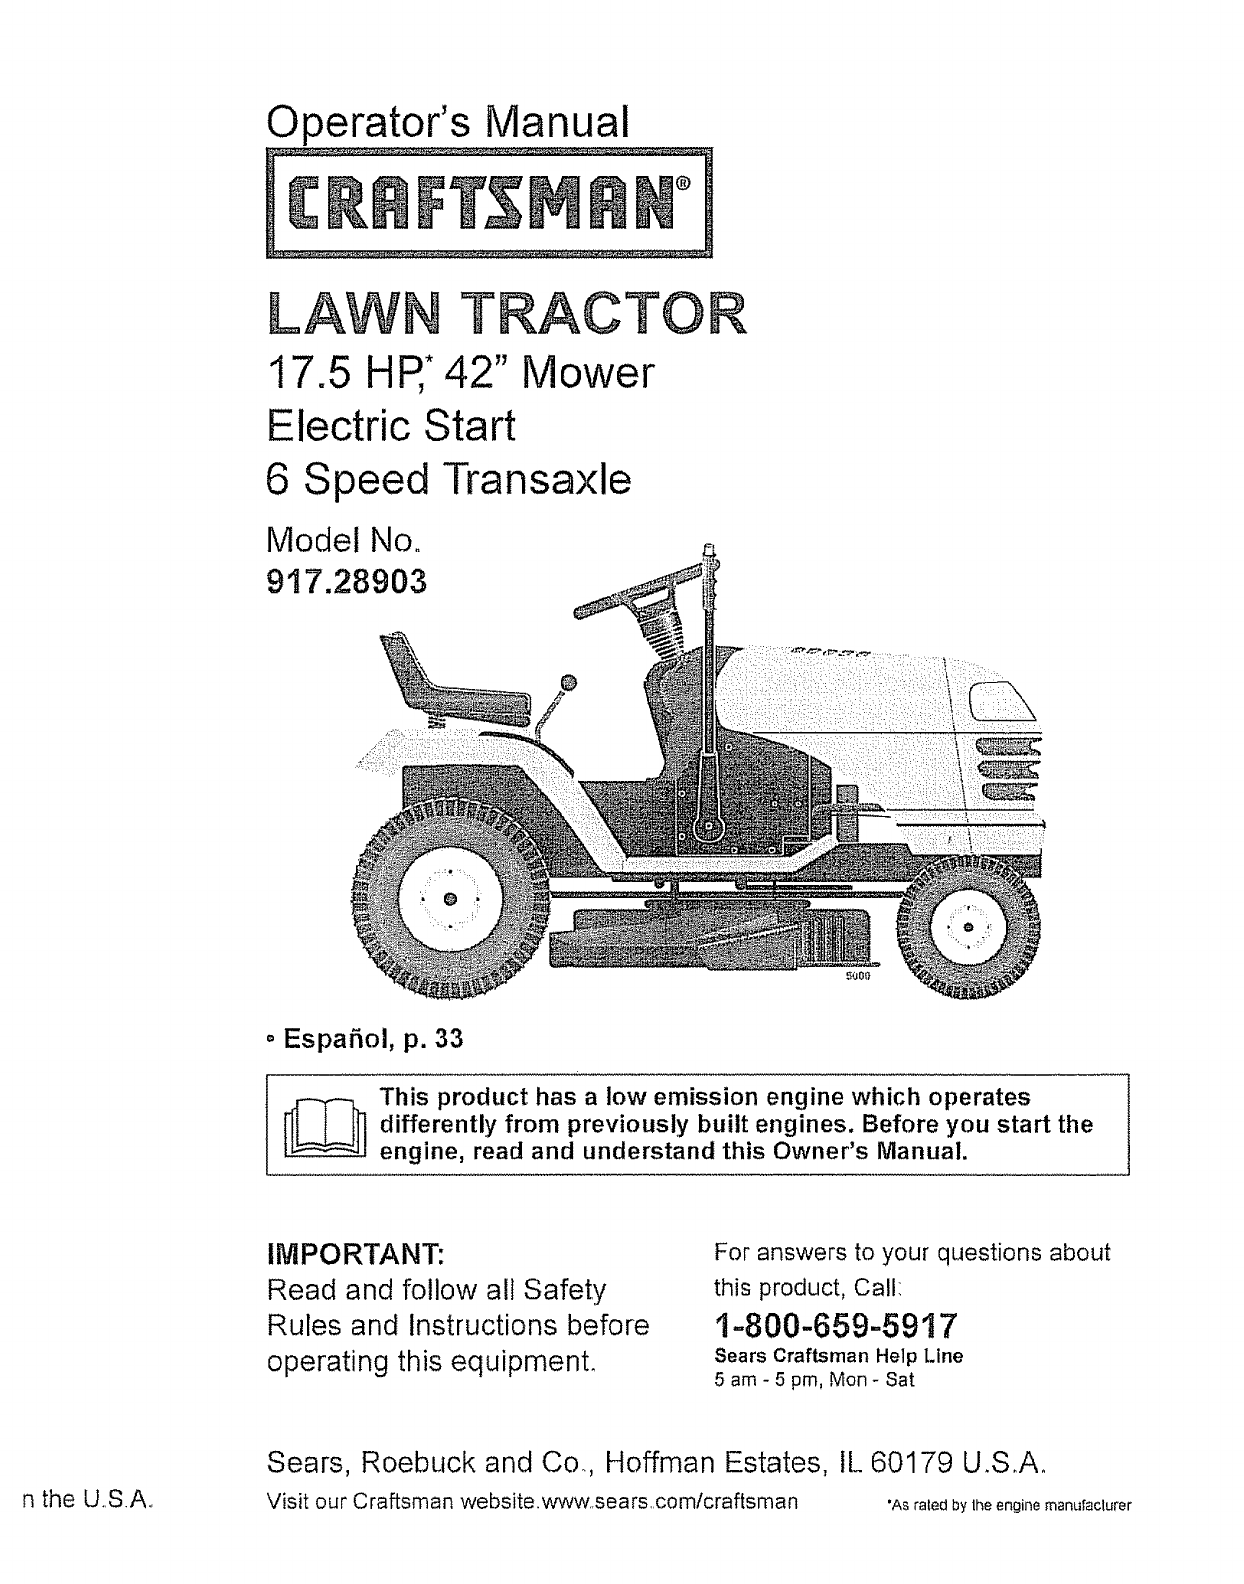 cb1648fd ba11 4ad4 80be 7014e24be2a7 bg1 craftsman riding lawn mower parts model 502254280 sears craftsman lt1000 lawn tractor wiring diagram at eliteediting.co